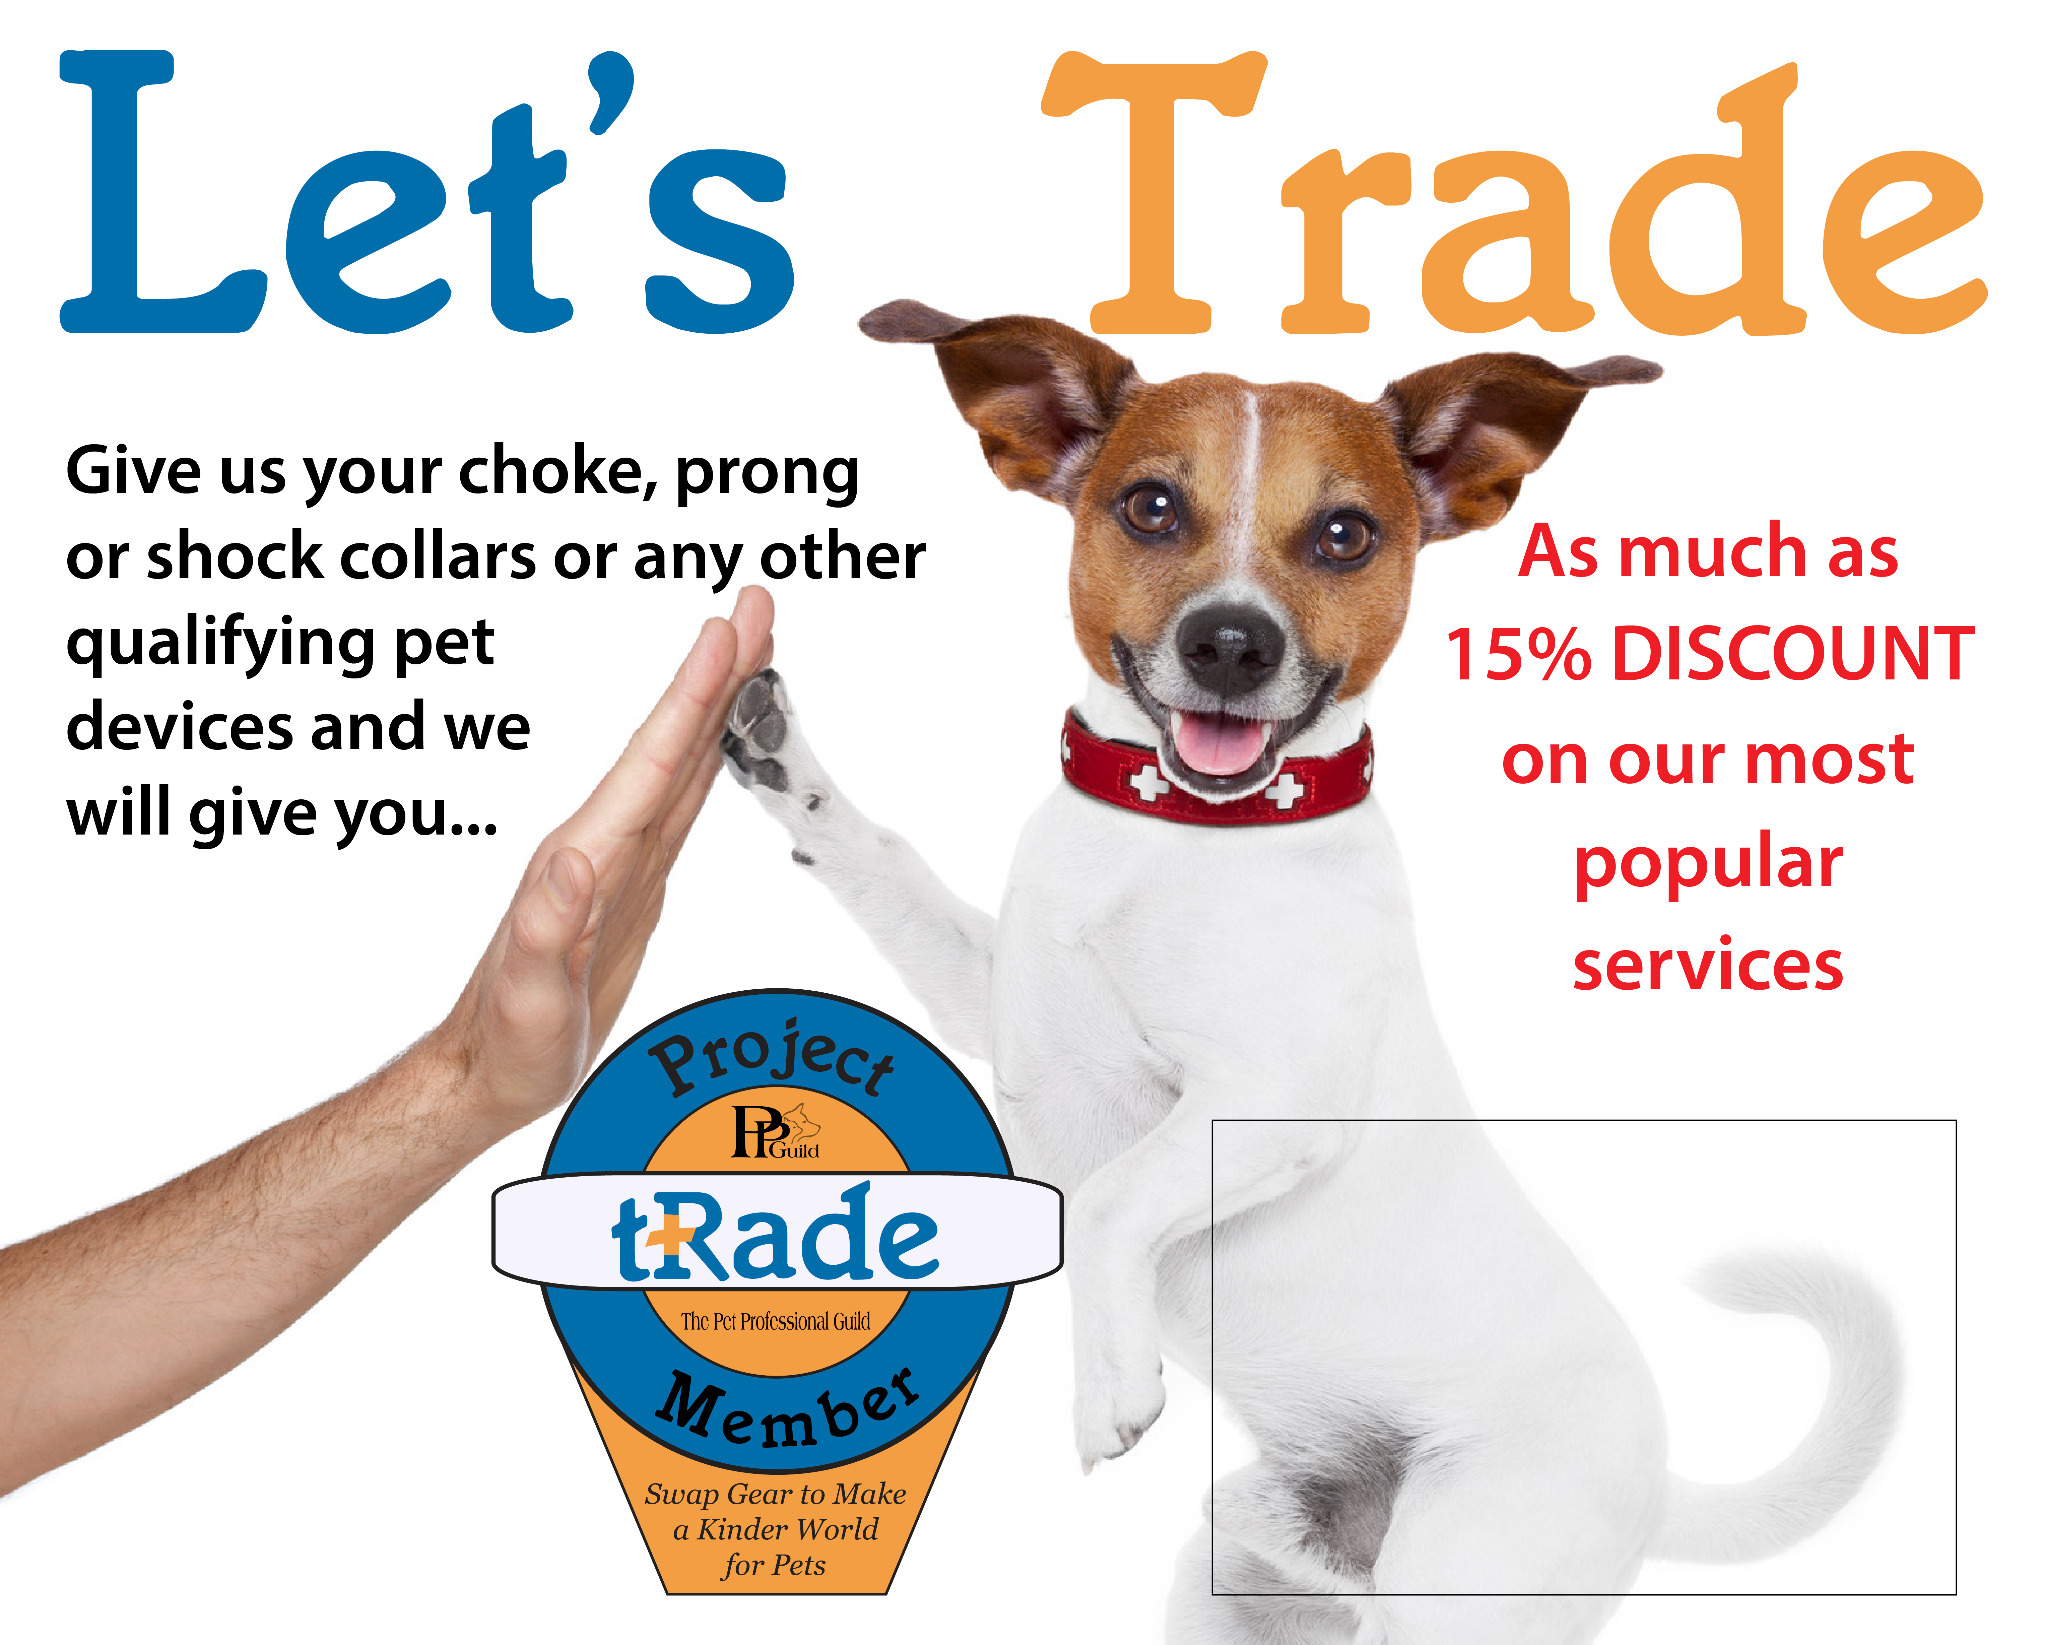 Project tRade Poster - Customizable